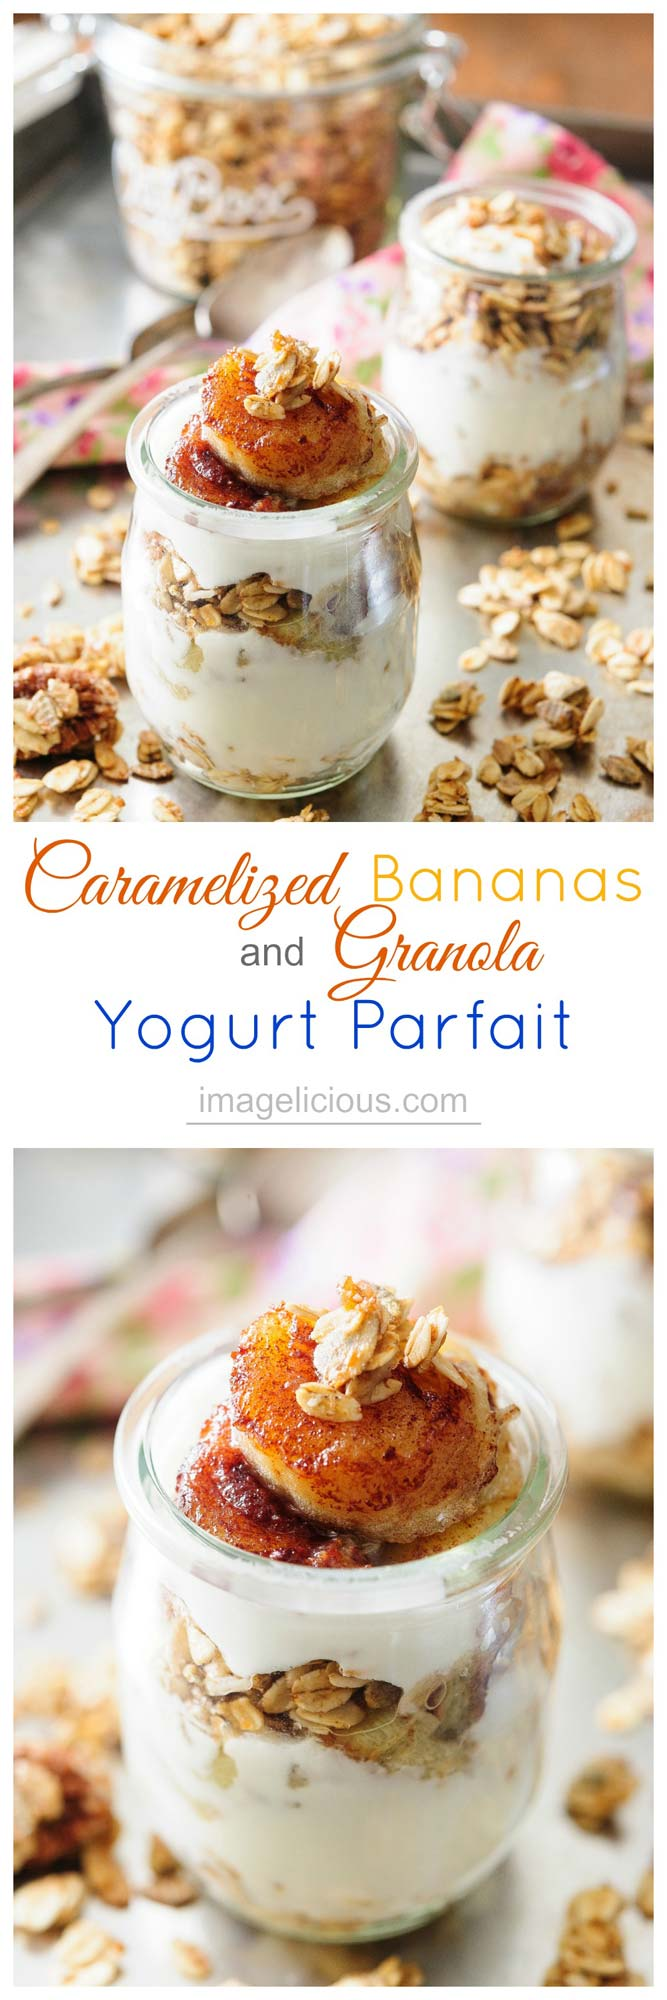 Caramelized Bananas and Granola Yogurt Parfait is super quick, easy and delicious. It only takes a few minutes to make and are perfect breakfast, snack or even dessert | Imagelicious